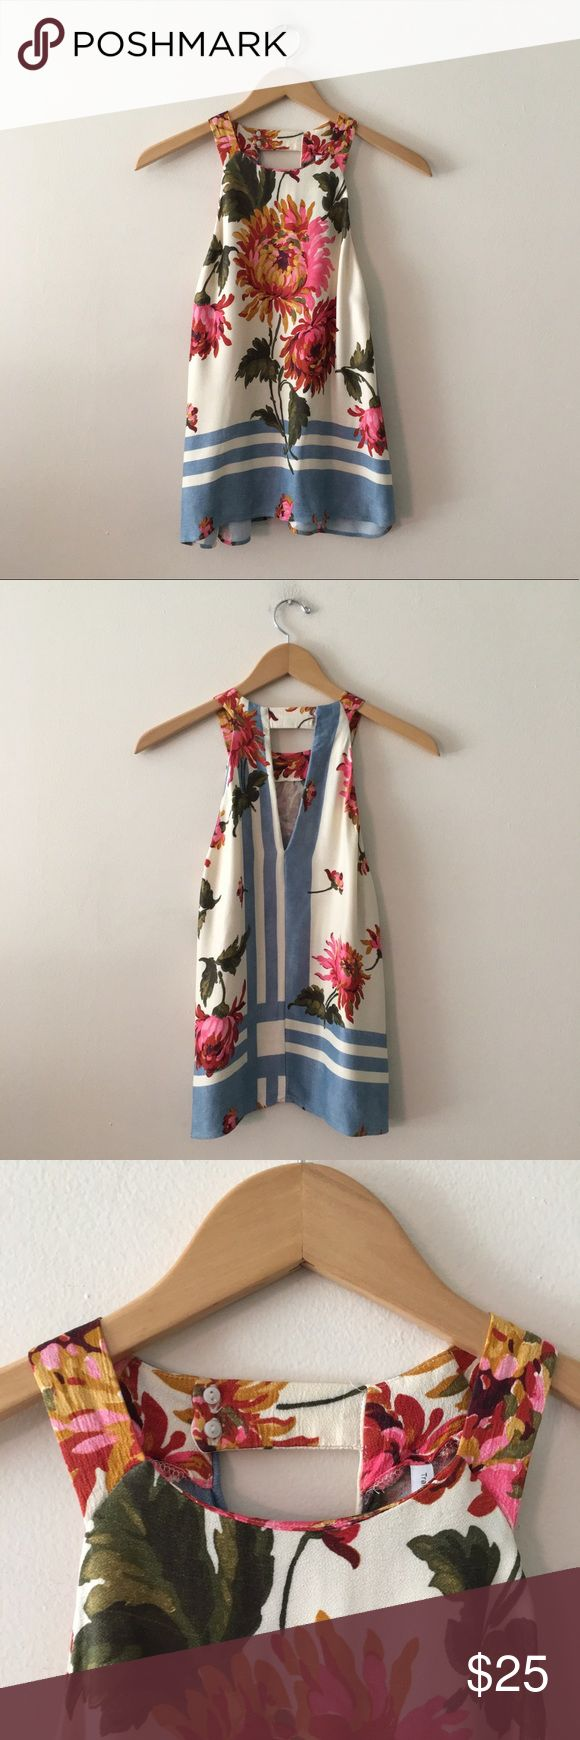 """Zara Floral Print Halter Top Blouse Halter neck sleeveless top from Zara. Featuring a multicolored floral and geometric print. Shirt closes at the back of the neck with two inward facing buttons. Back also features a keyhole design. Loose fit. Length: 24"""" Armpit to Armpit: 19.5"""" Zara Tops"""